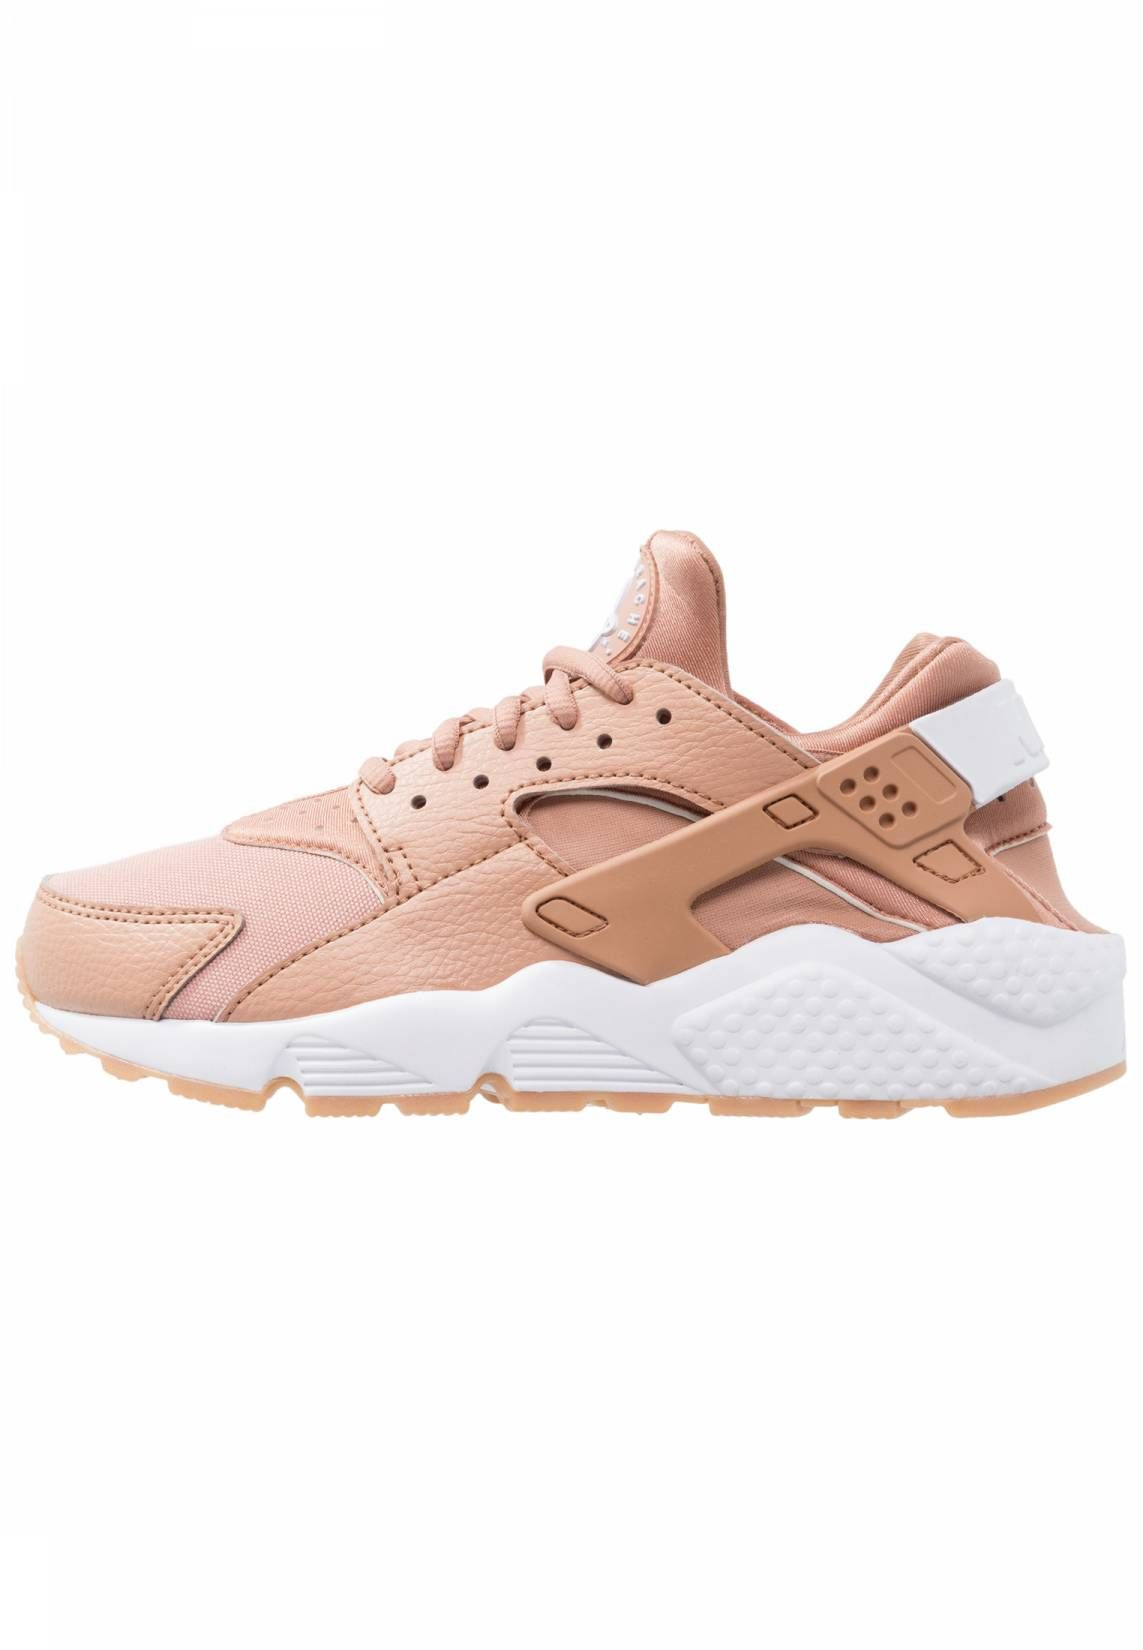 premium selection fe605 c3064 Nike Sportswear. AIR HUARACHE RUN - Tenisówki i Trampki - dusted clay/white/